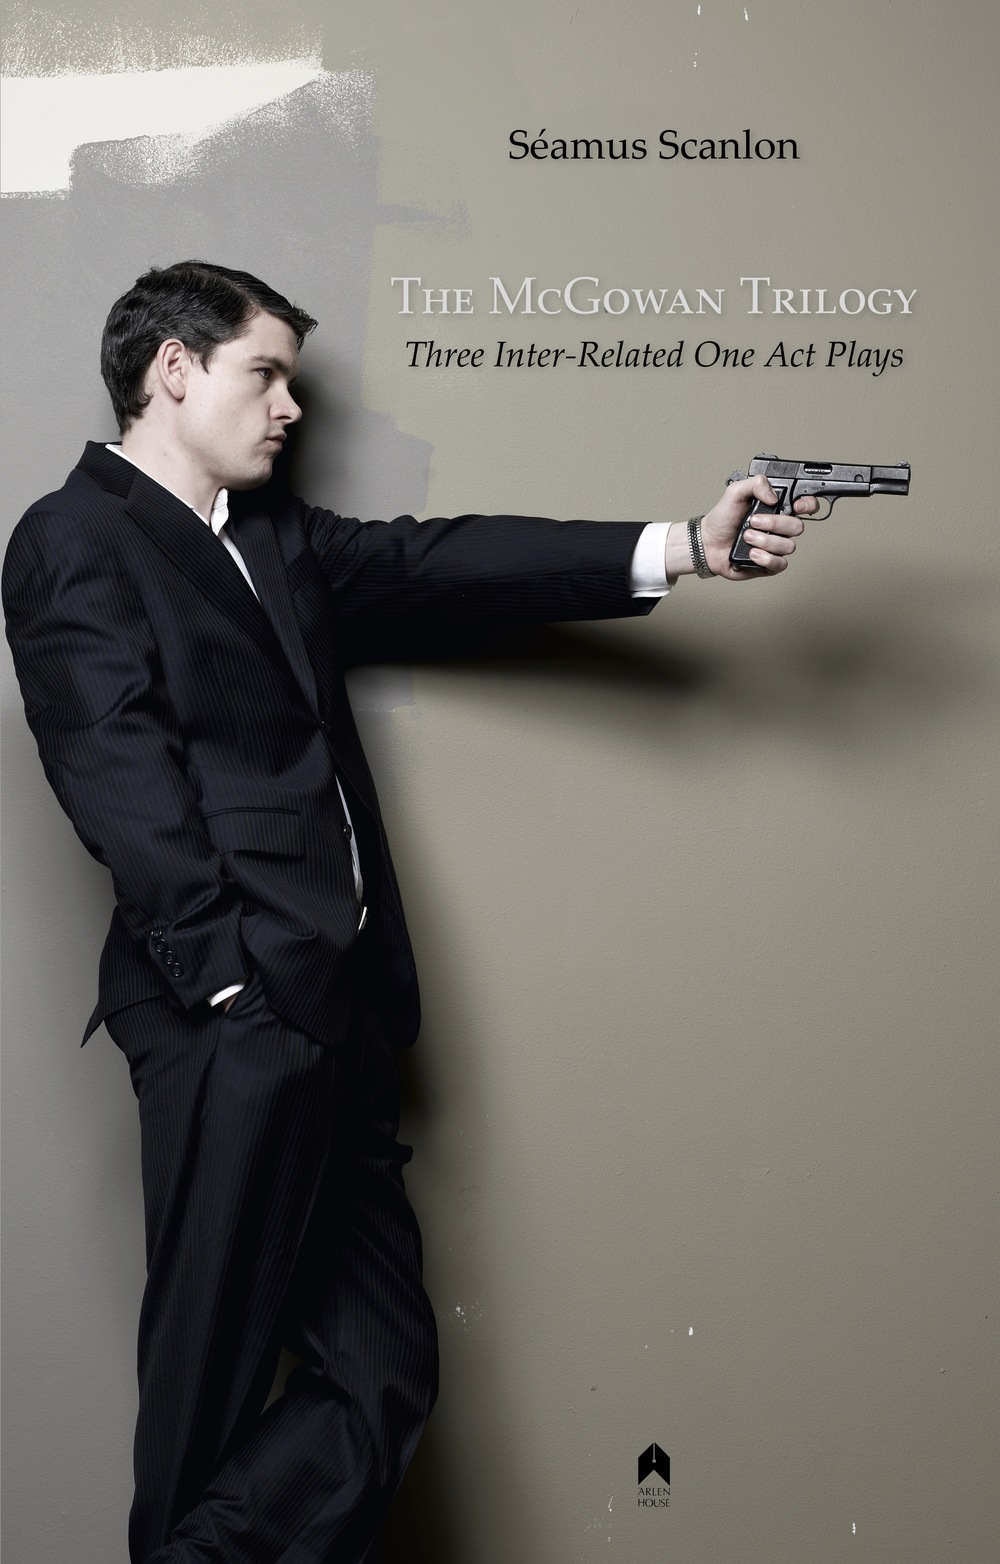 McGowan Book Cover Image.jpg